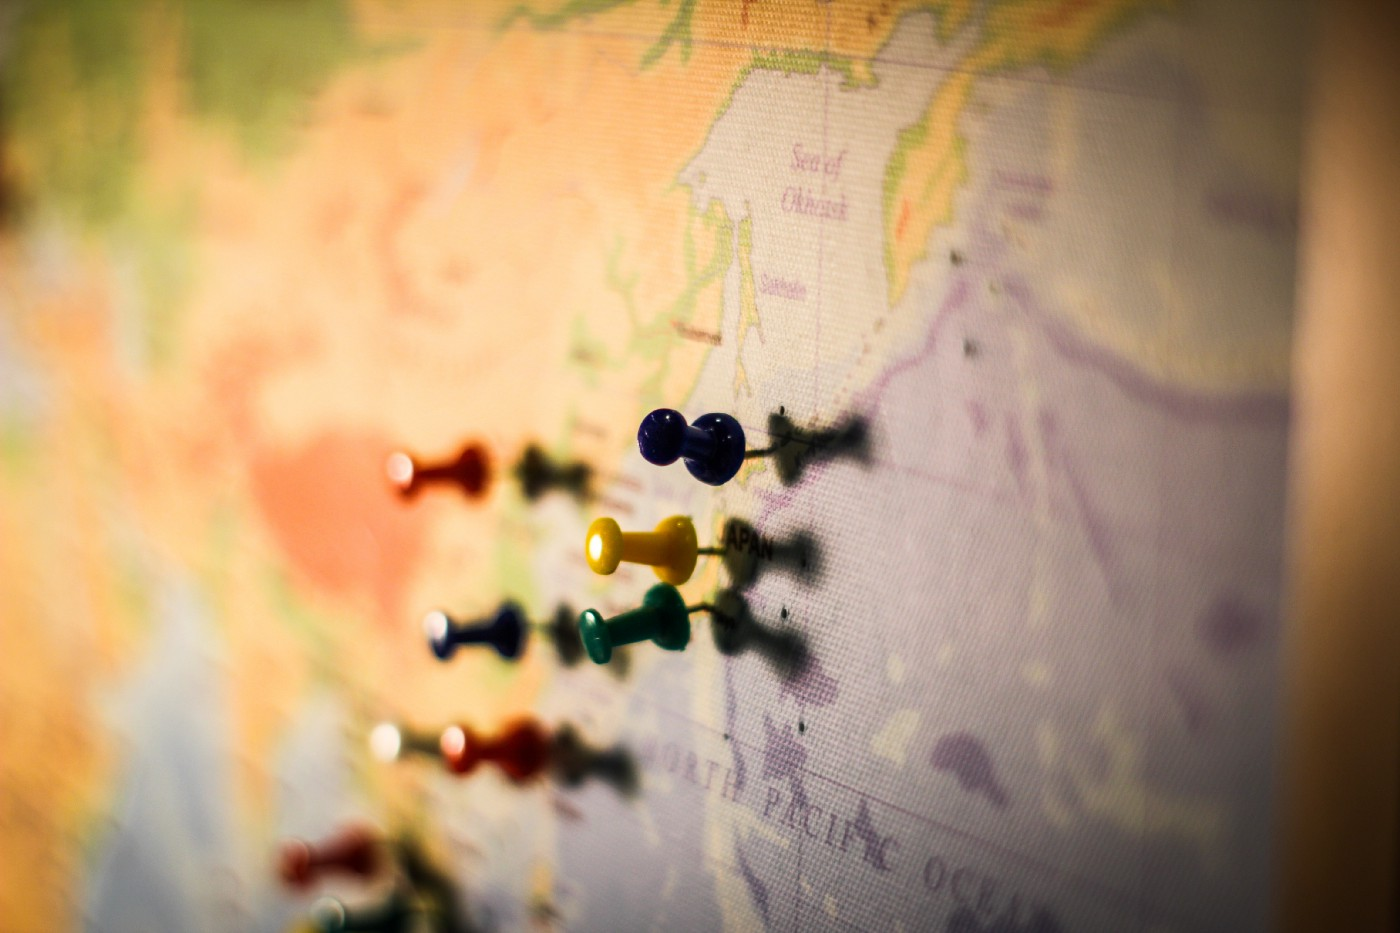 Pins in a map